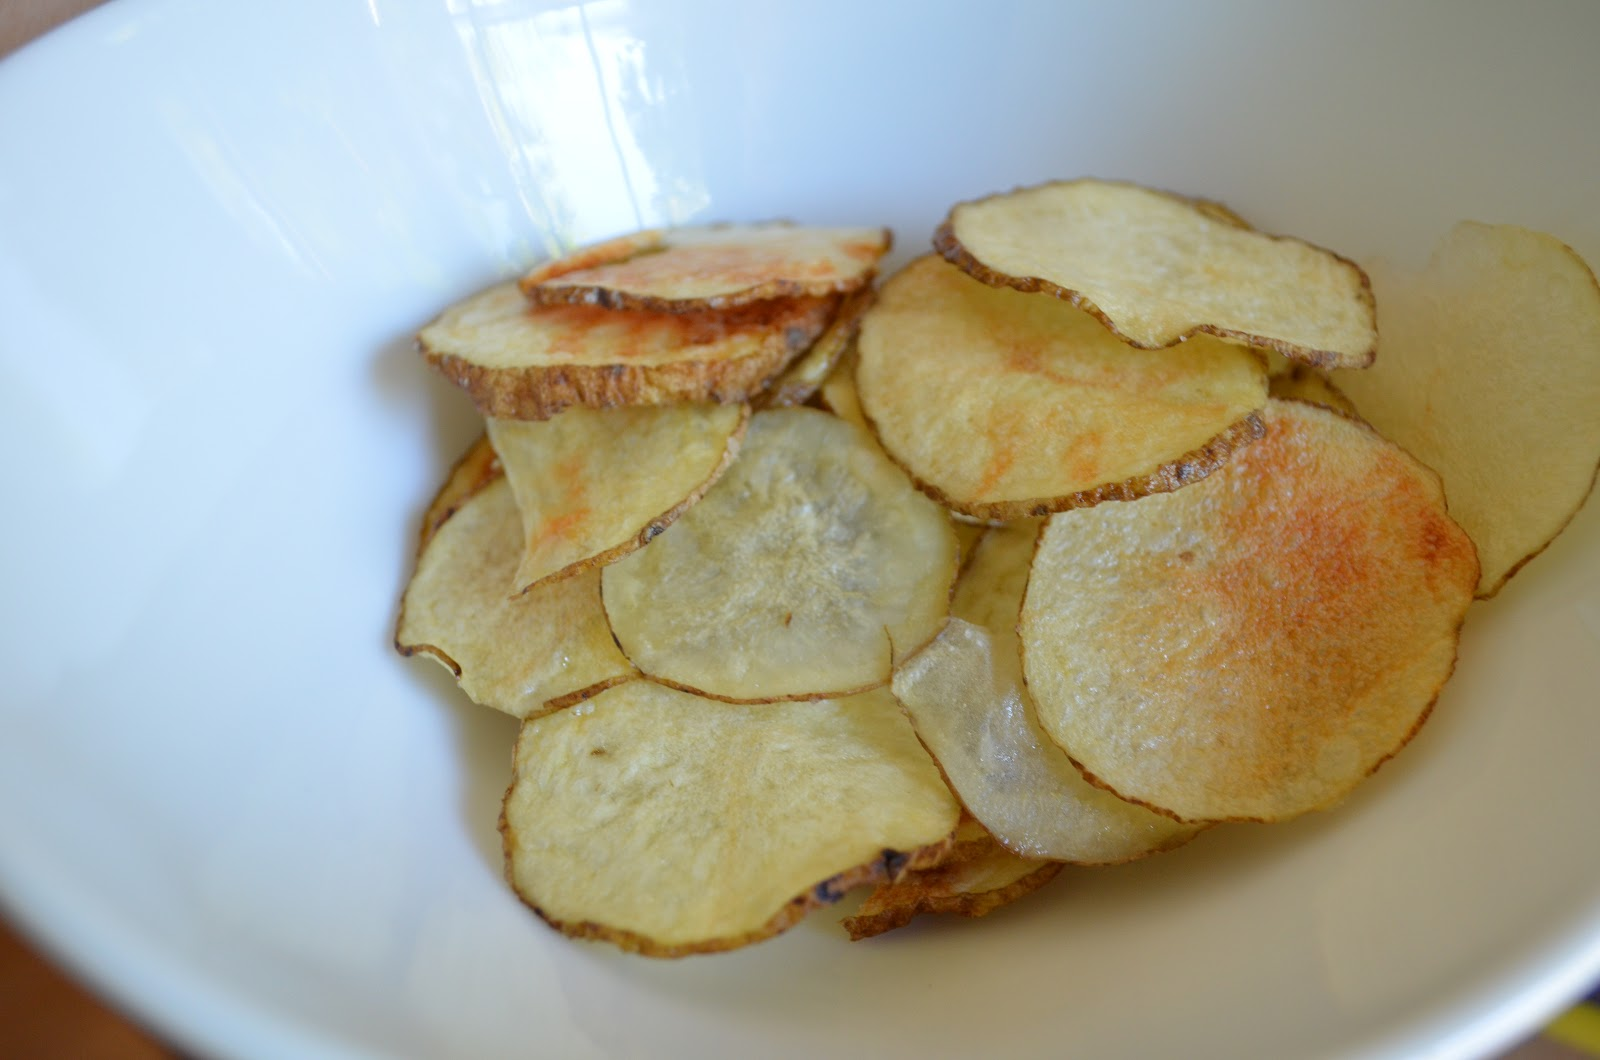 how potato chips are made A video shows how stack-able pringles potato chips are made step-by-step in the factory the chips start their life being flattened on one of many conveyor belts then are cut, pressed and molded.